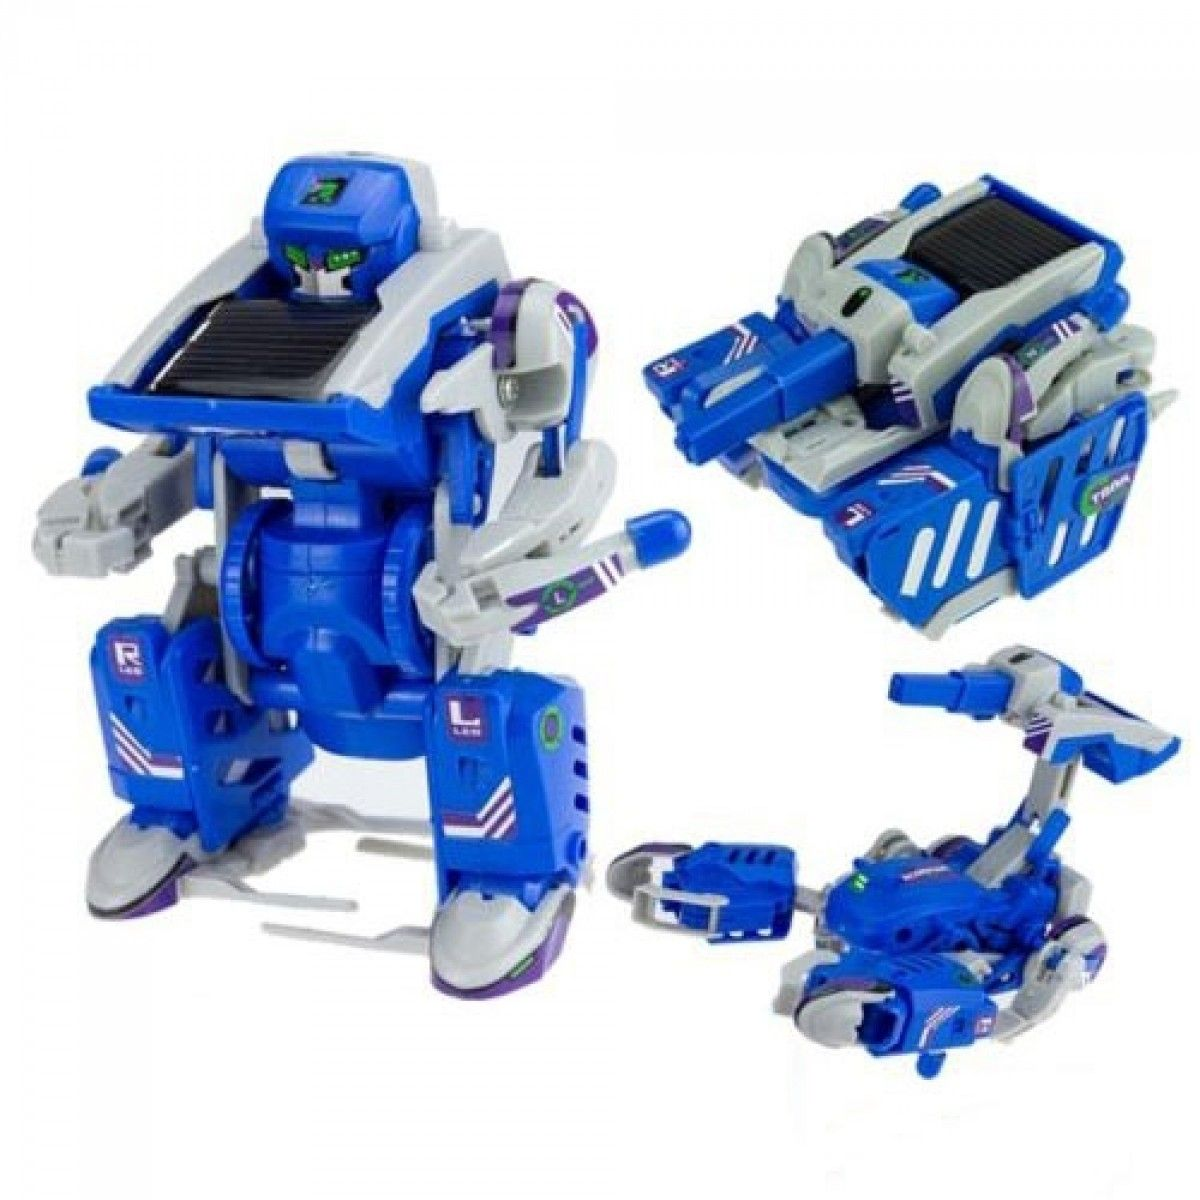 Other Toys - 3in1 Spider & Solar Robot was listed for R133 ...